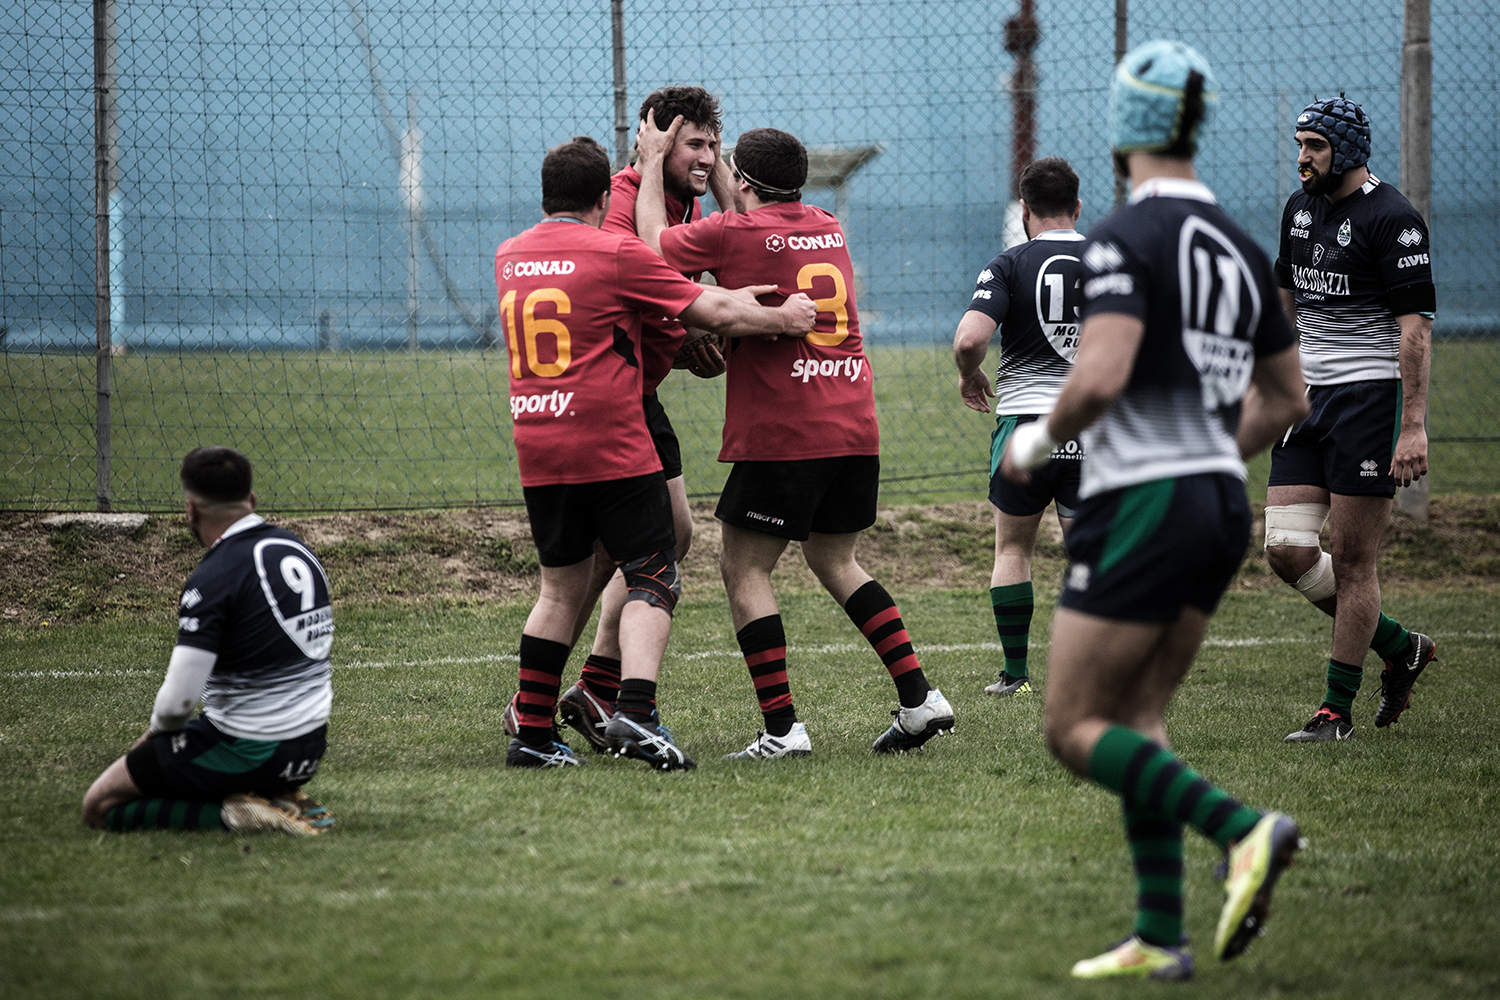 rugby_photograph_34.jpg